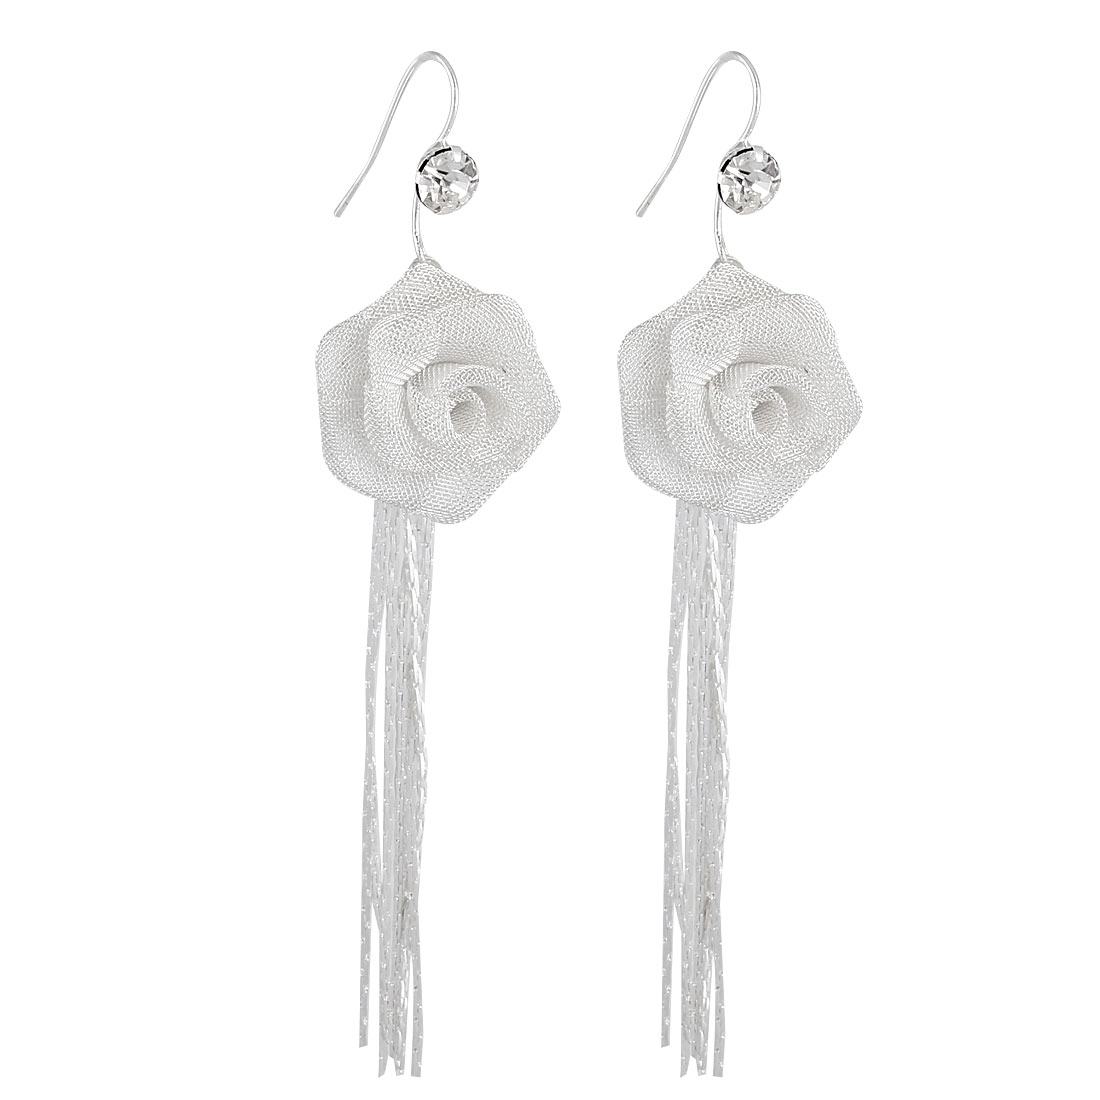 Metal Chain Tassels Peony Shaped Pendant Hook Earrings Silver Tone Pair for Lady